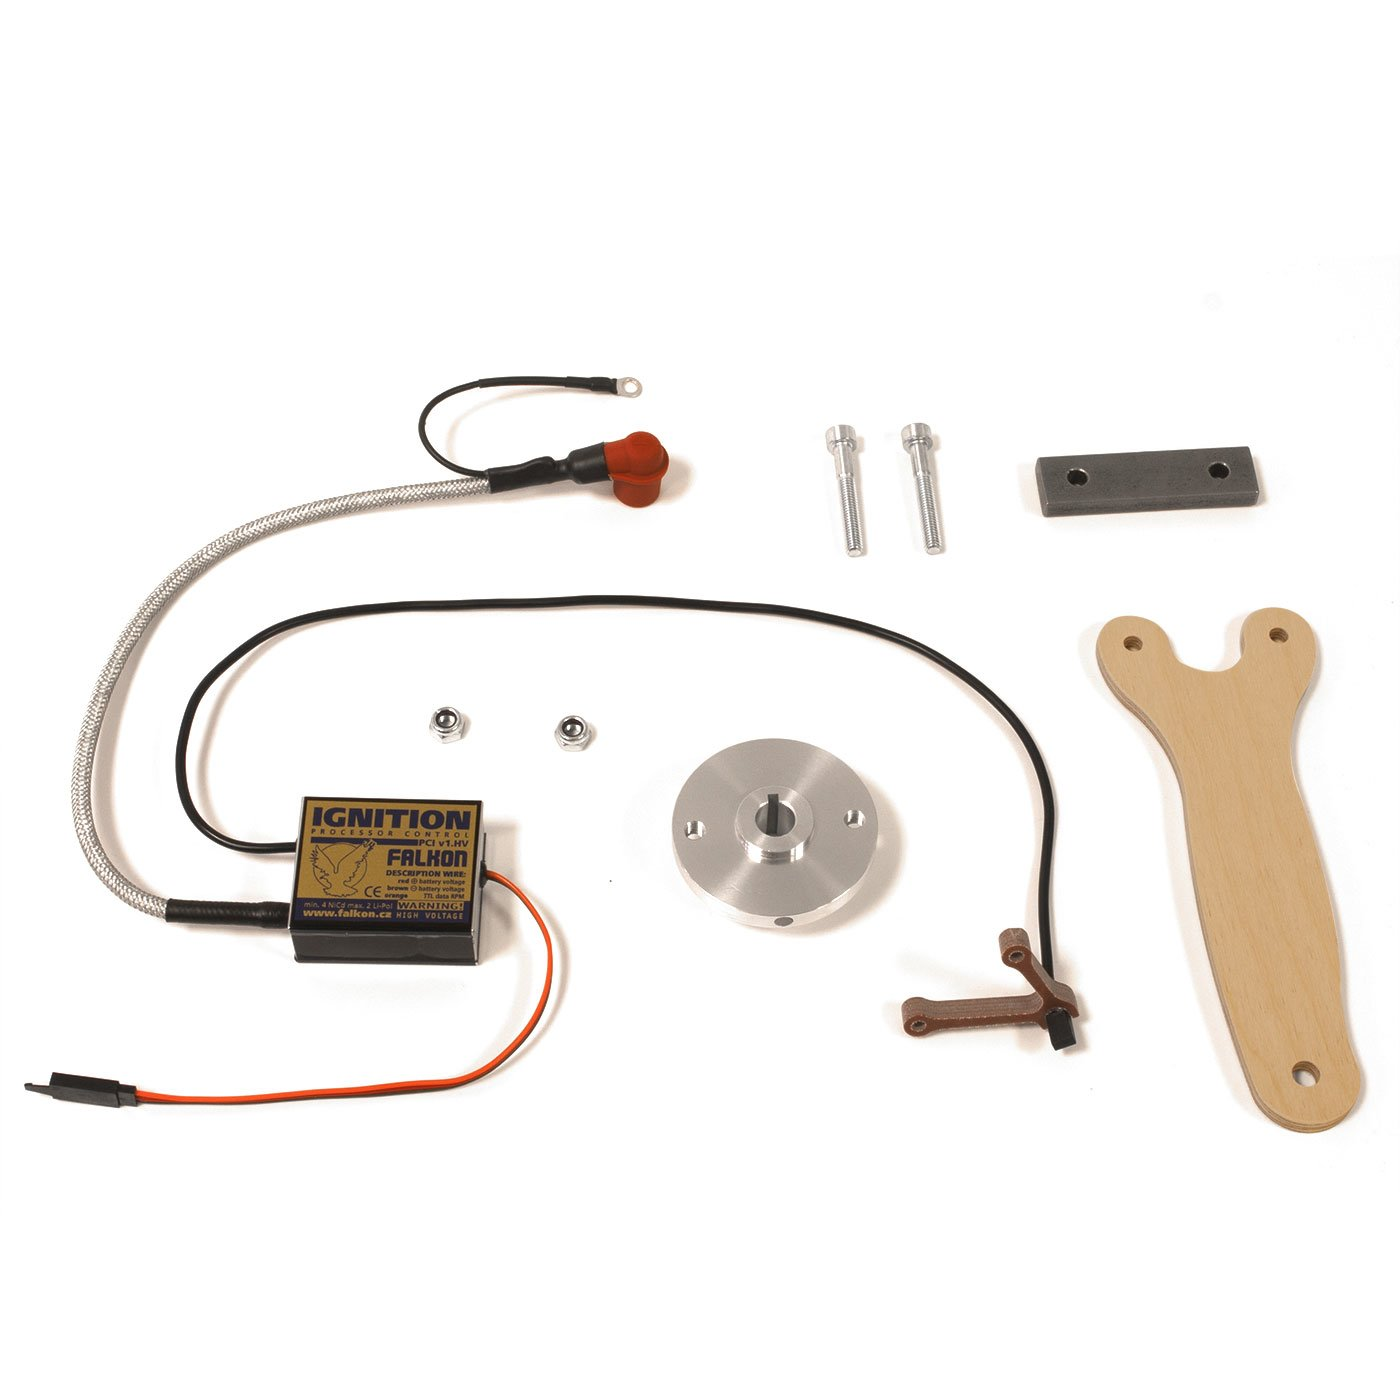 PCI-HV ignition conversion set with Zenoah rubber plug cap for Z